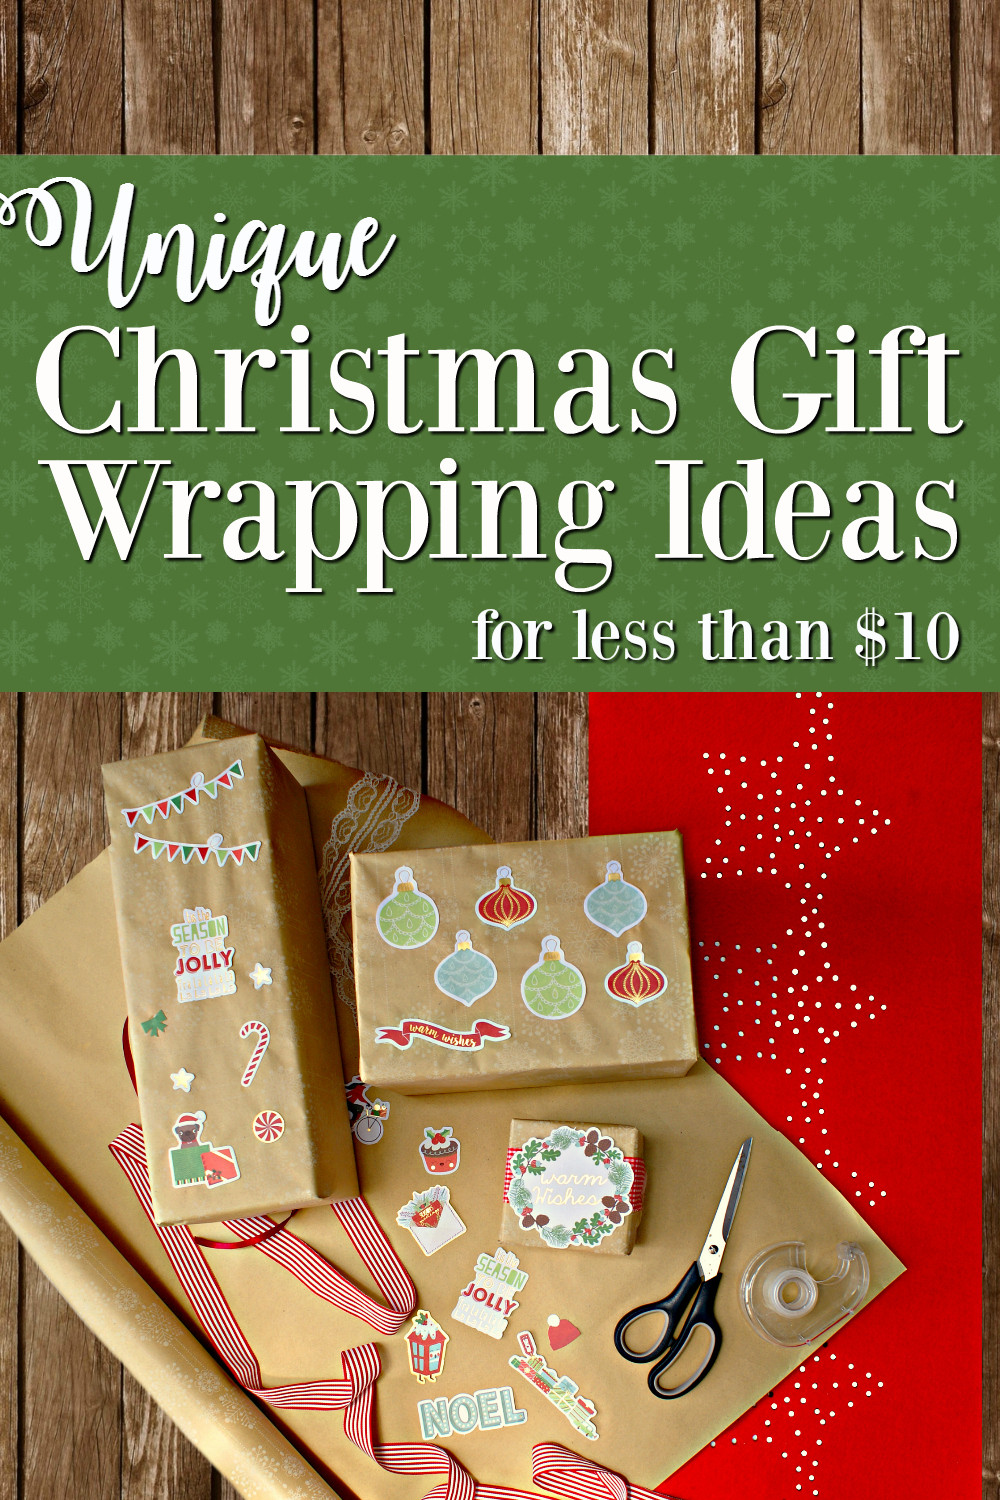 Best ideas about Unique Holiday Gift Ideas . Save or Pin Southern In Law Unique Gift Wrapping Ideas for Christmas Now.